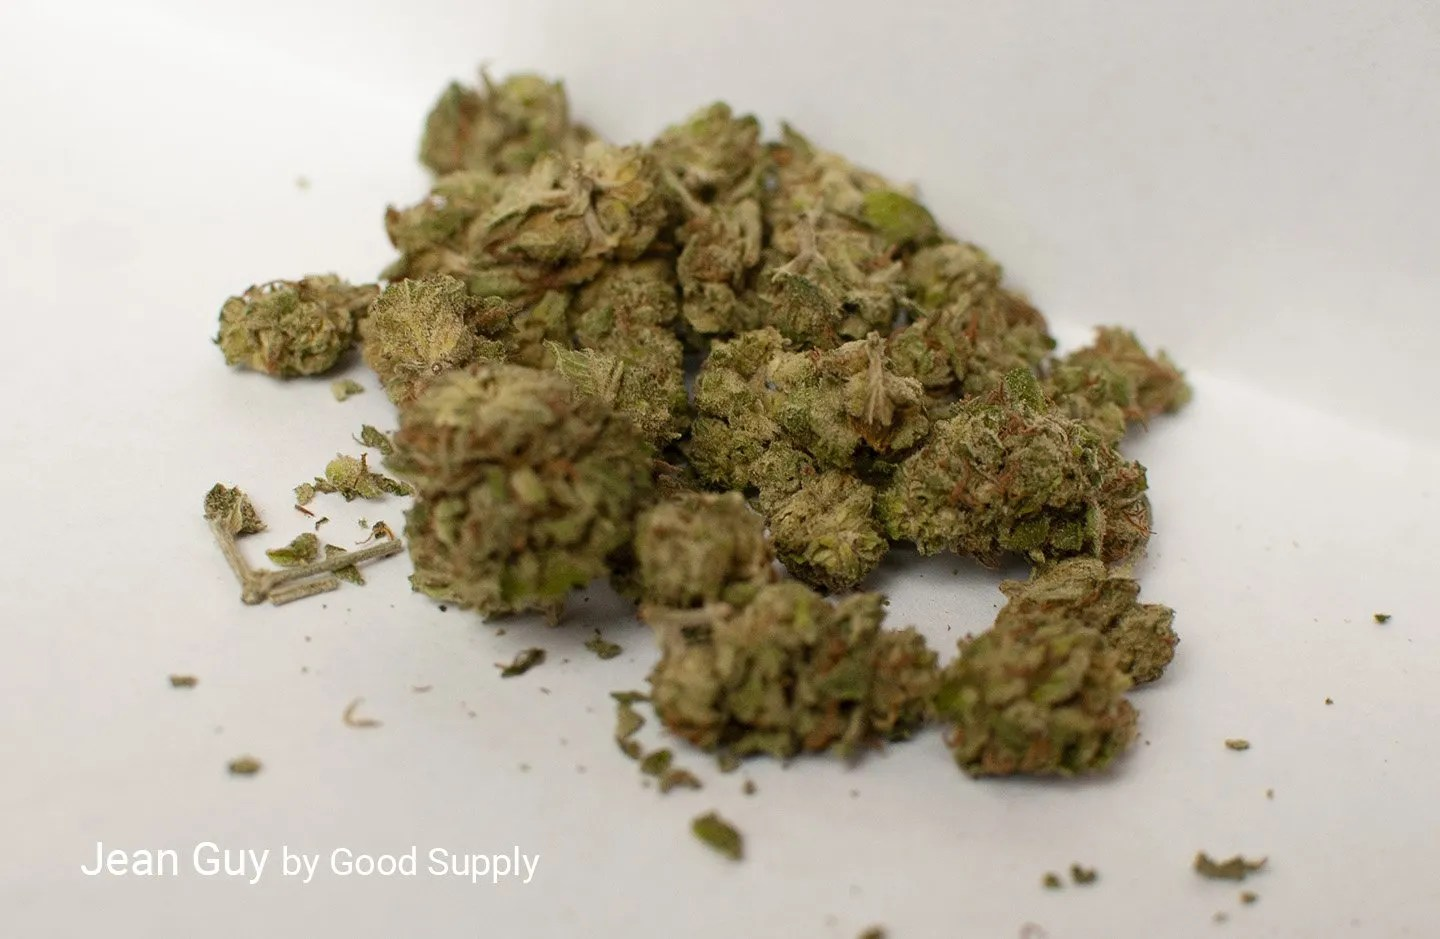 22.39% THC Jean Guy by Good Supply